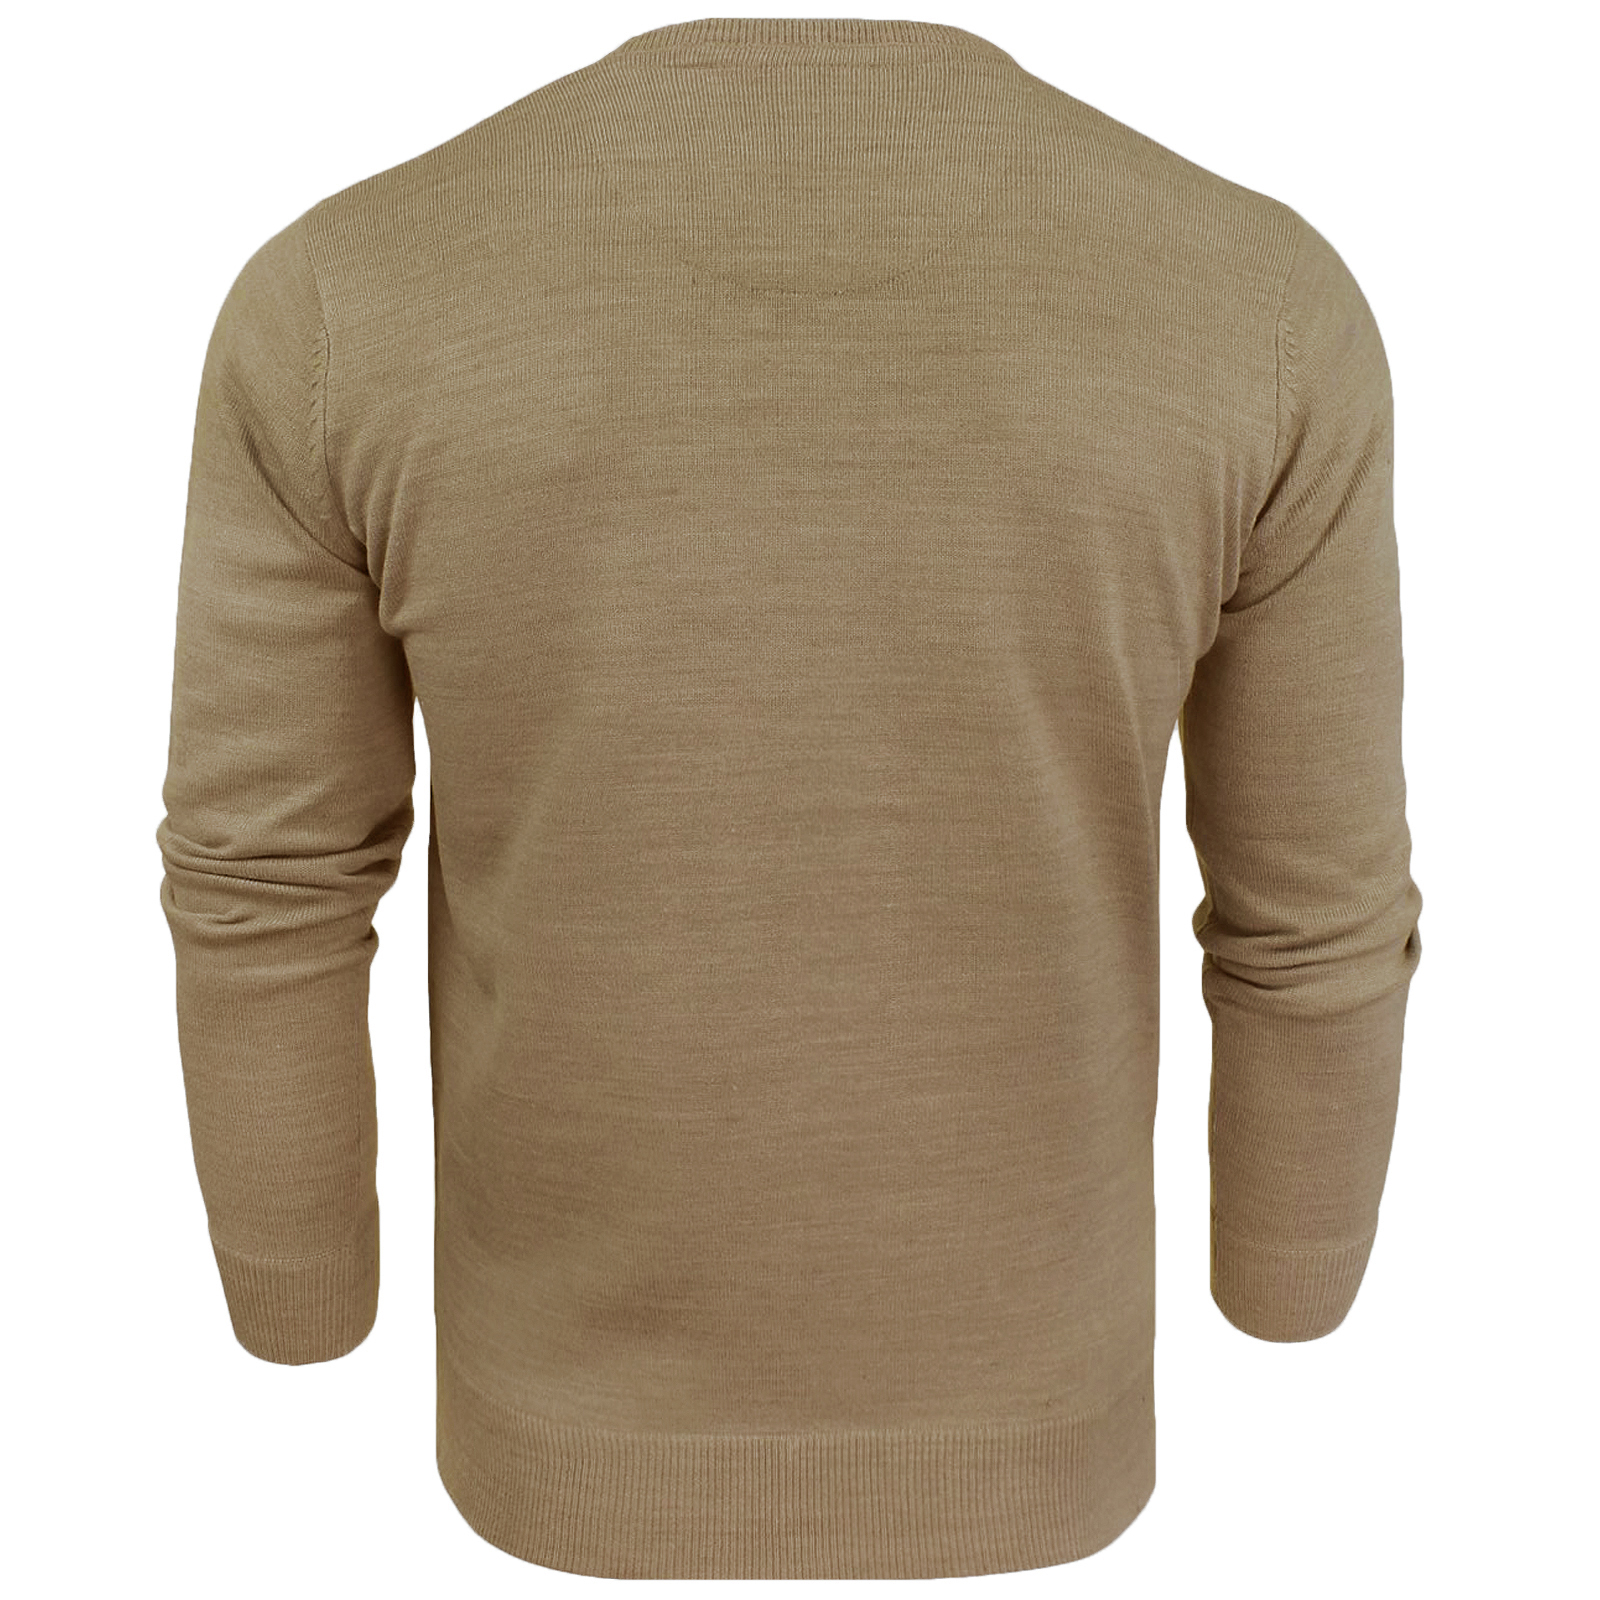 Brave-Soul-Mens-Parse-Knitted-Long-Sleeve-Crew-Neck-Jumper-Sweater-Pullover-Top thumbnail 3